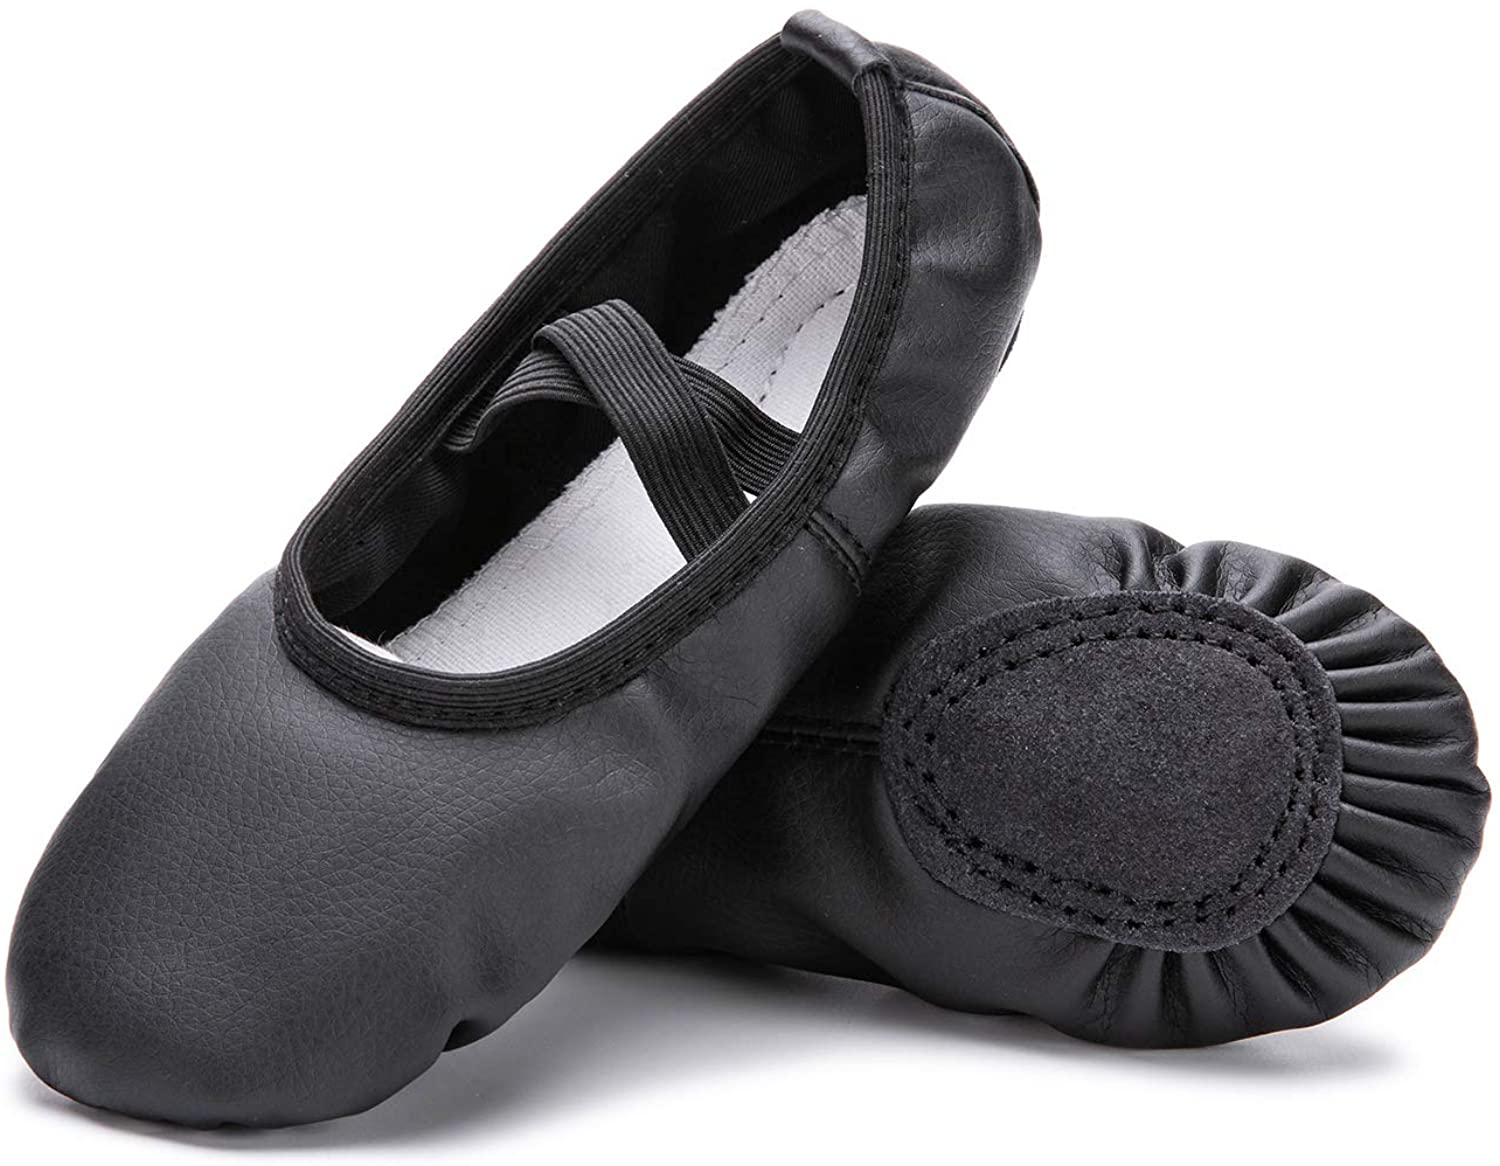 Leather Yoga Shoes//Ballet Slippers for Dancing8 Toddler Nude RoseMoli Ballet Shoes for Girls//Toddlers//Kids//Women